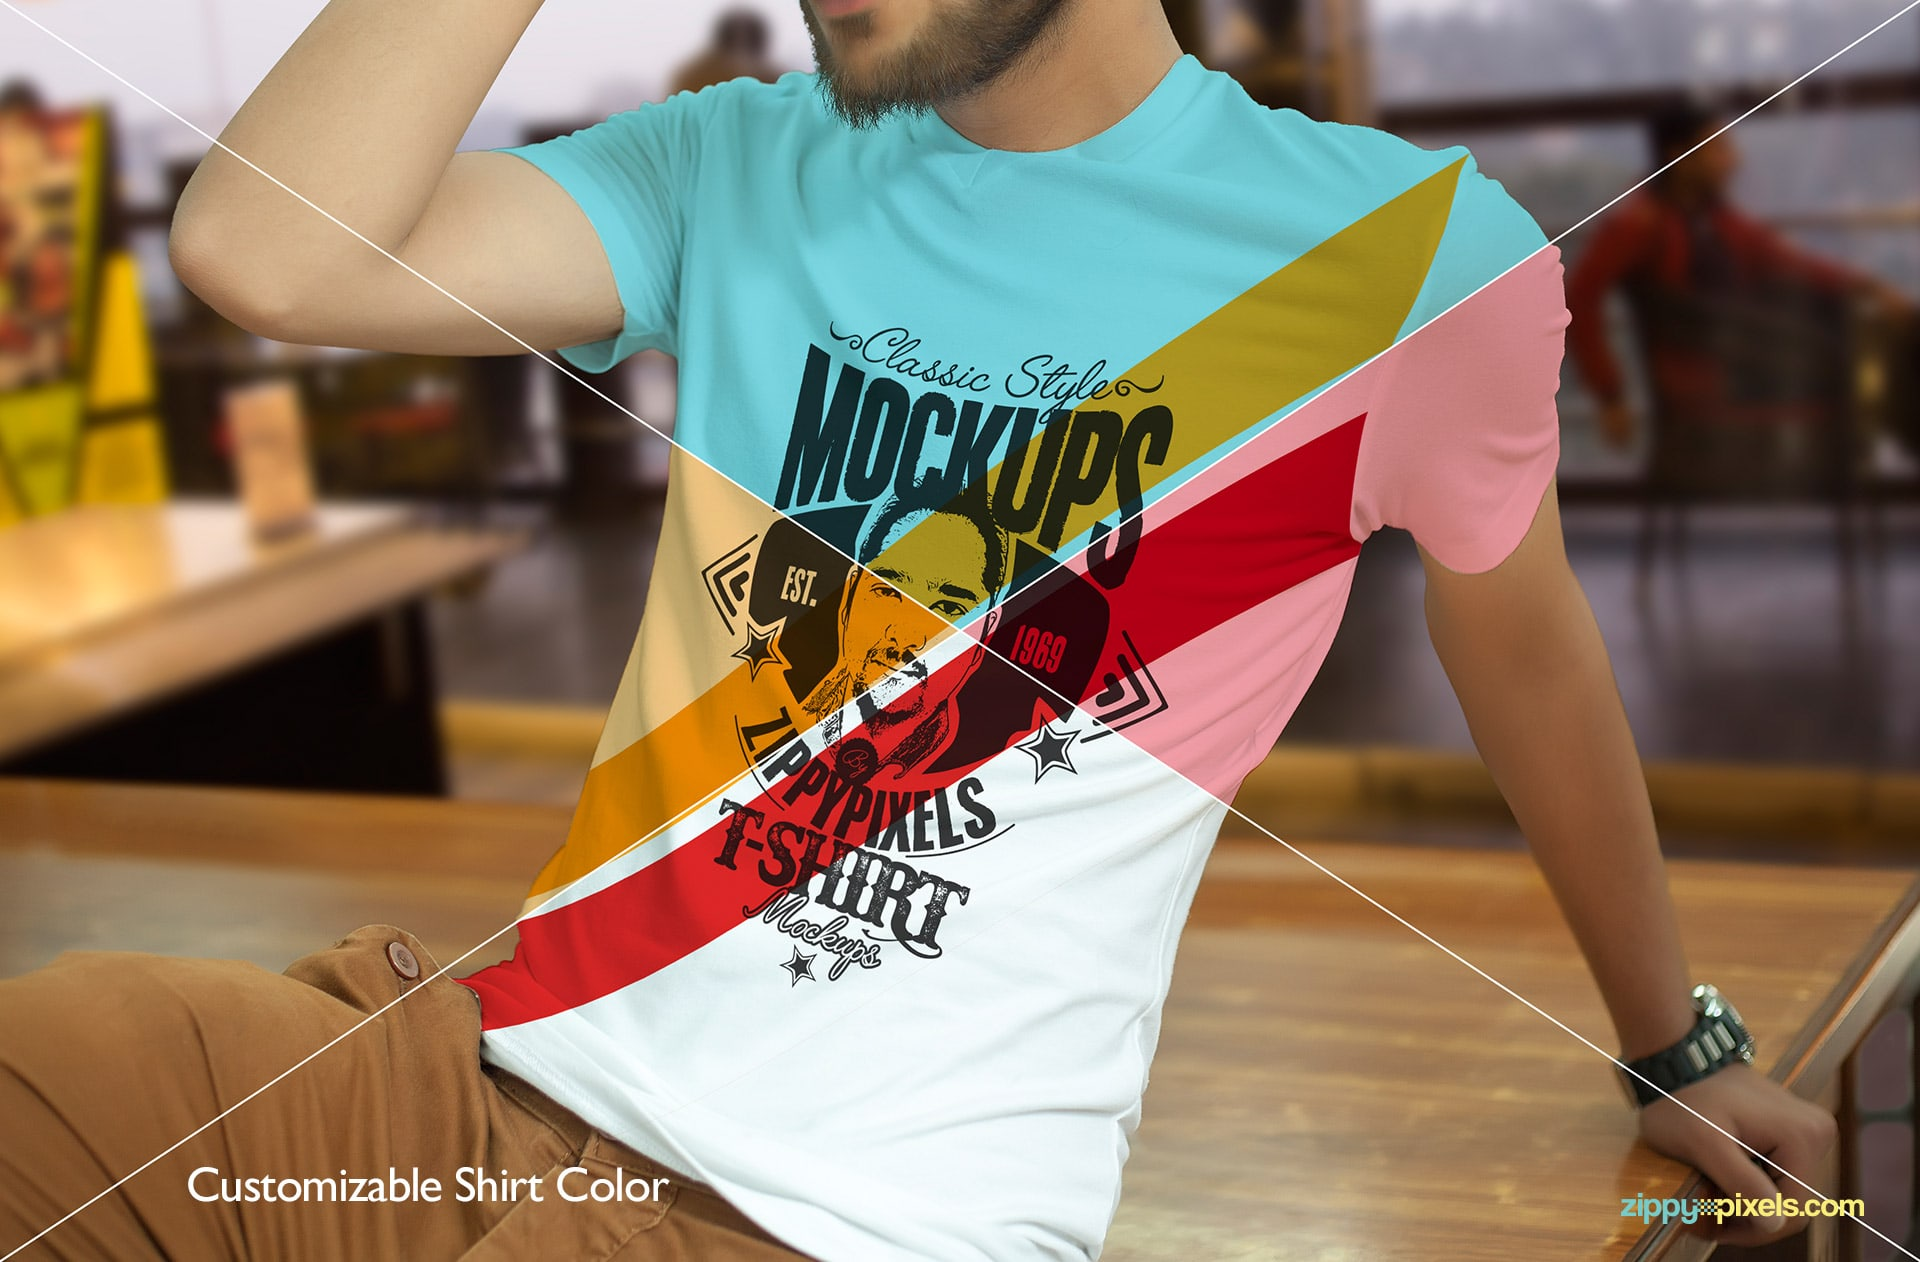 T-shirt mockups with customizable shirt colors